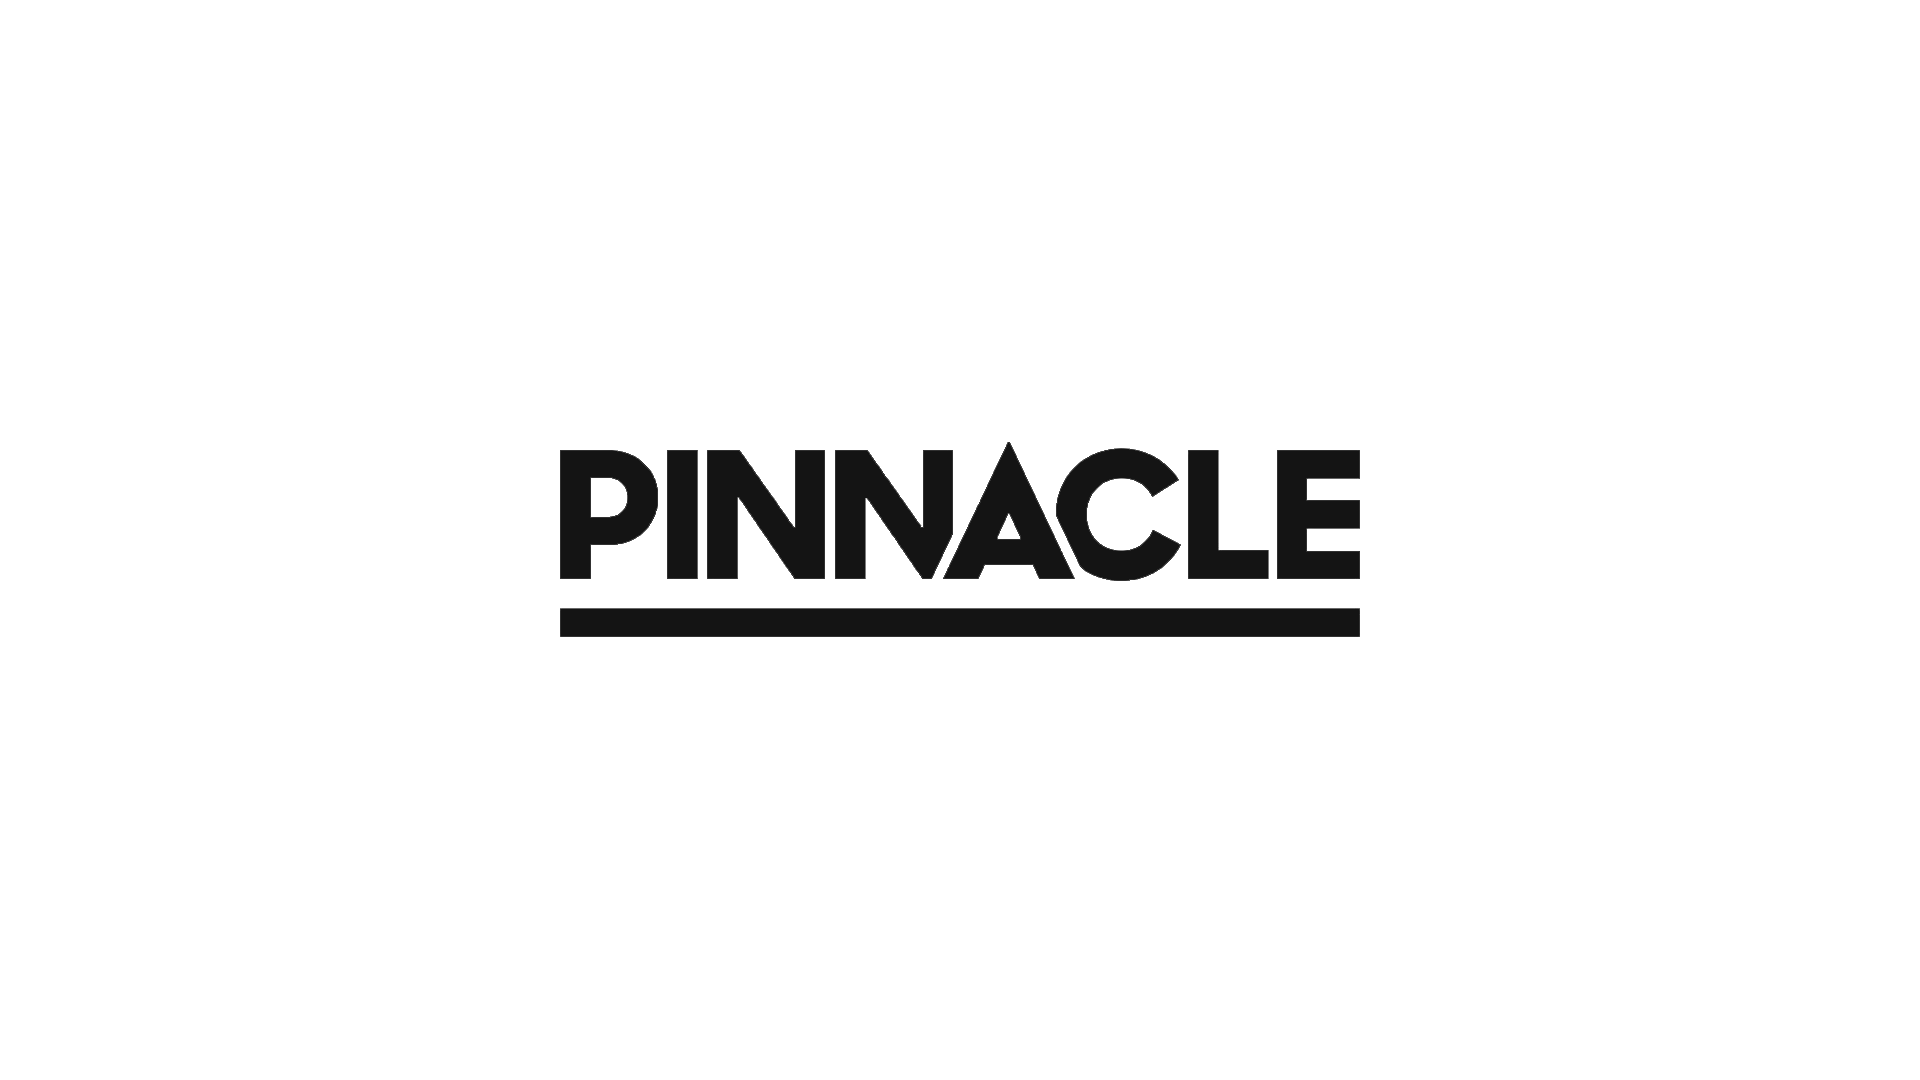 pinnacle-HD